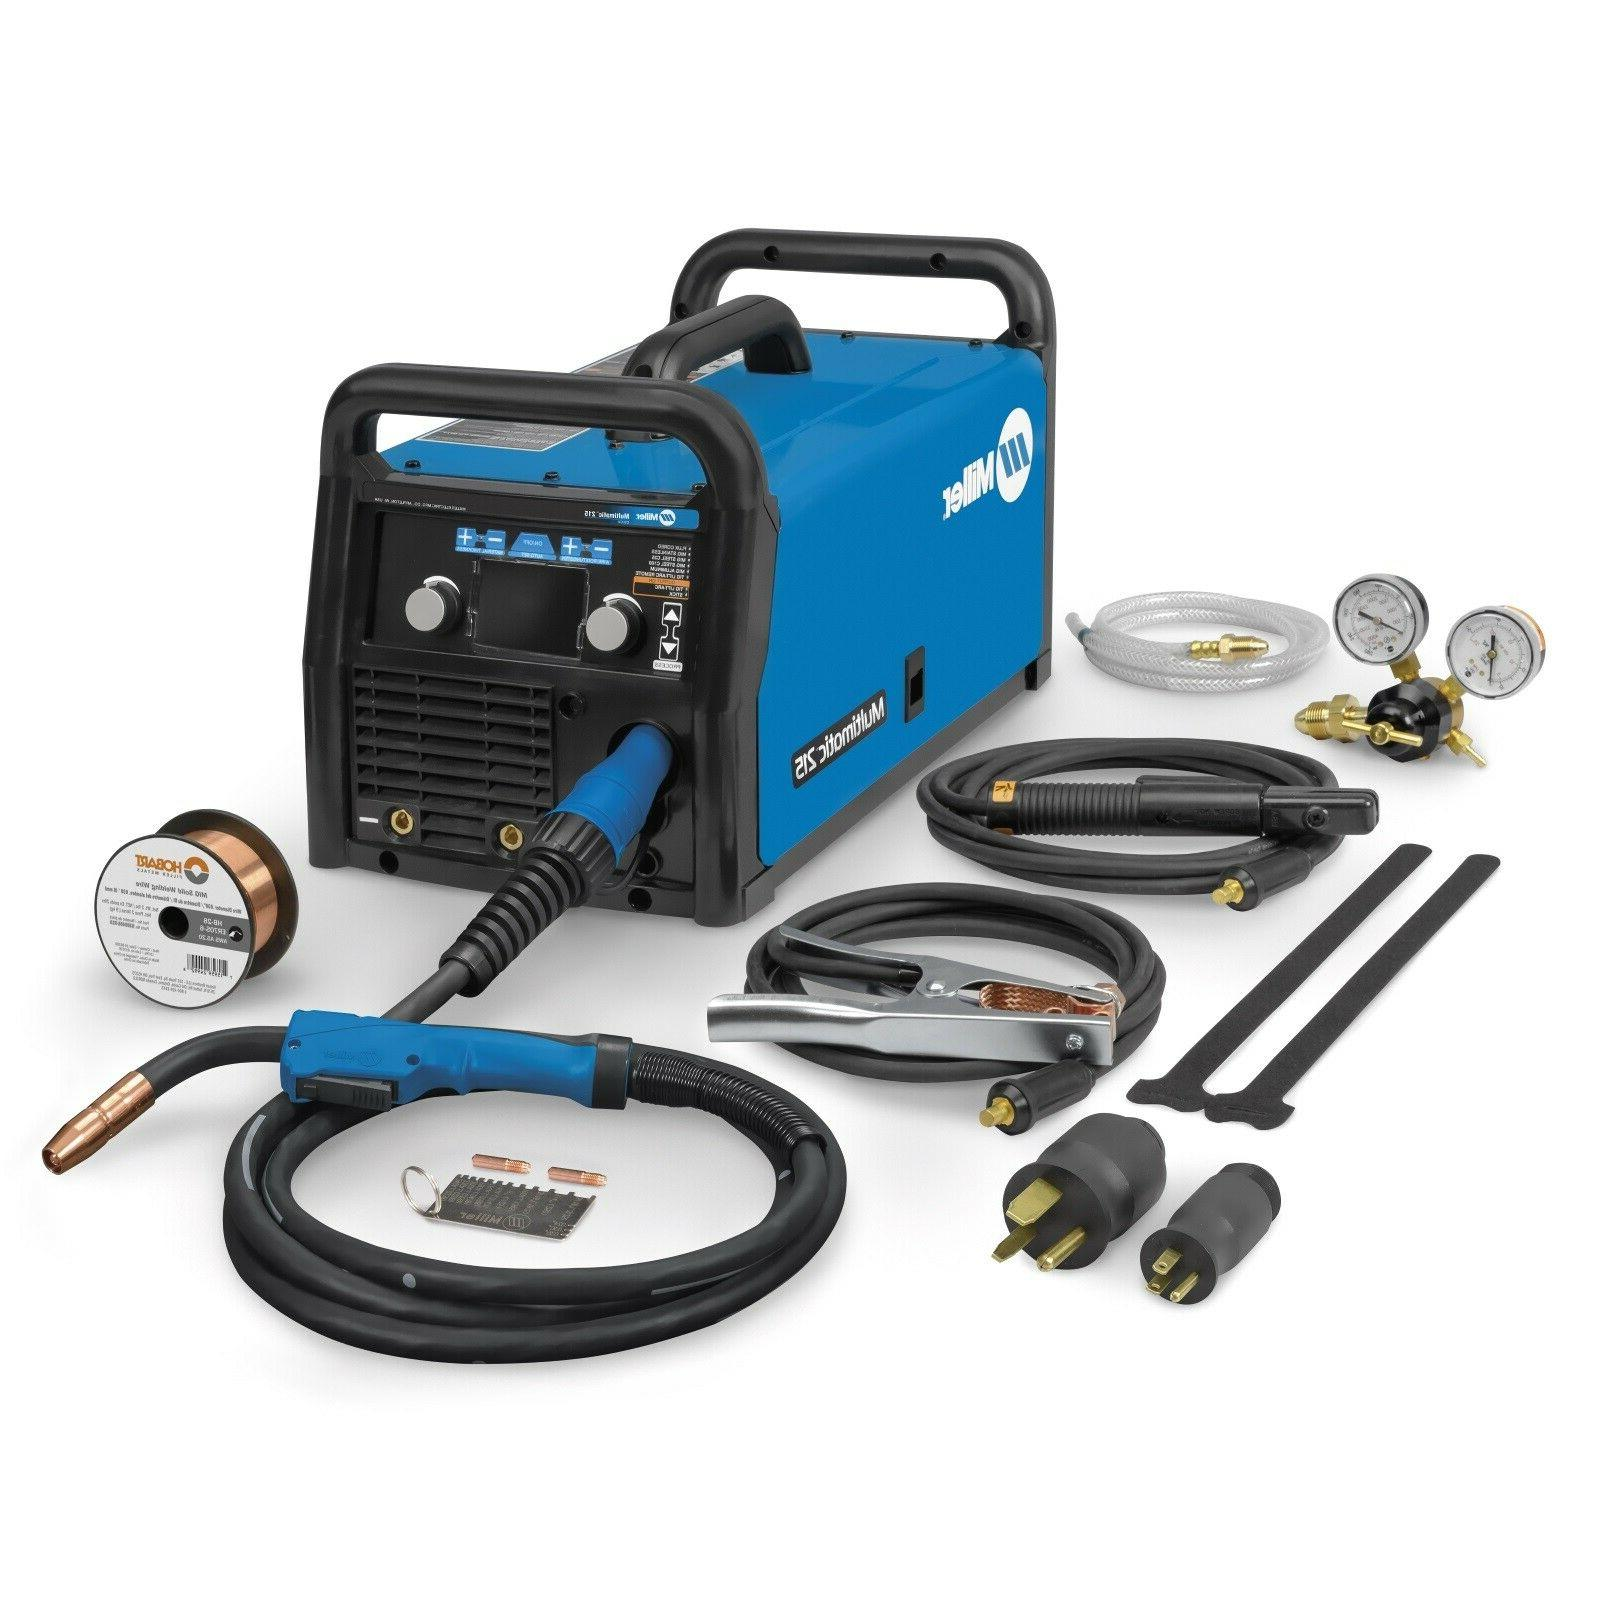 Miller Multimatic 215 Auto-Set Multiprocess Welder